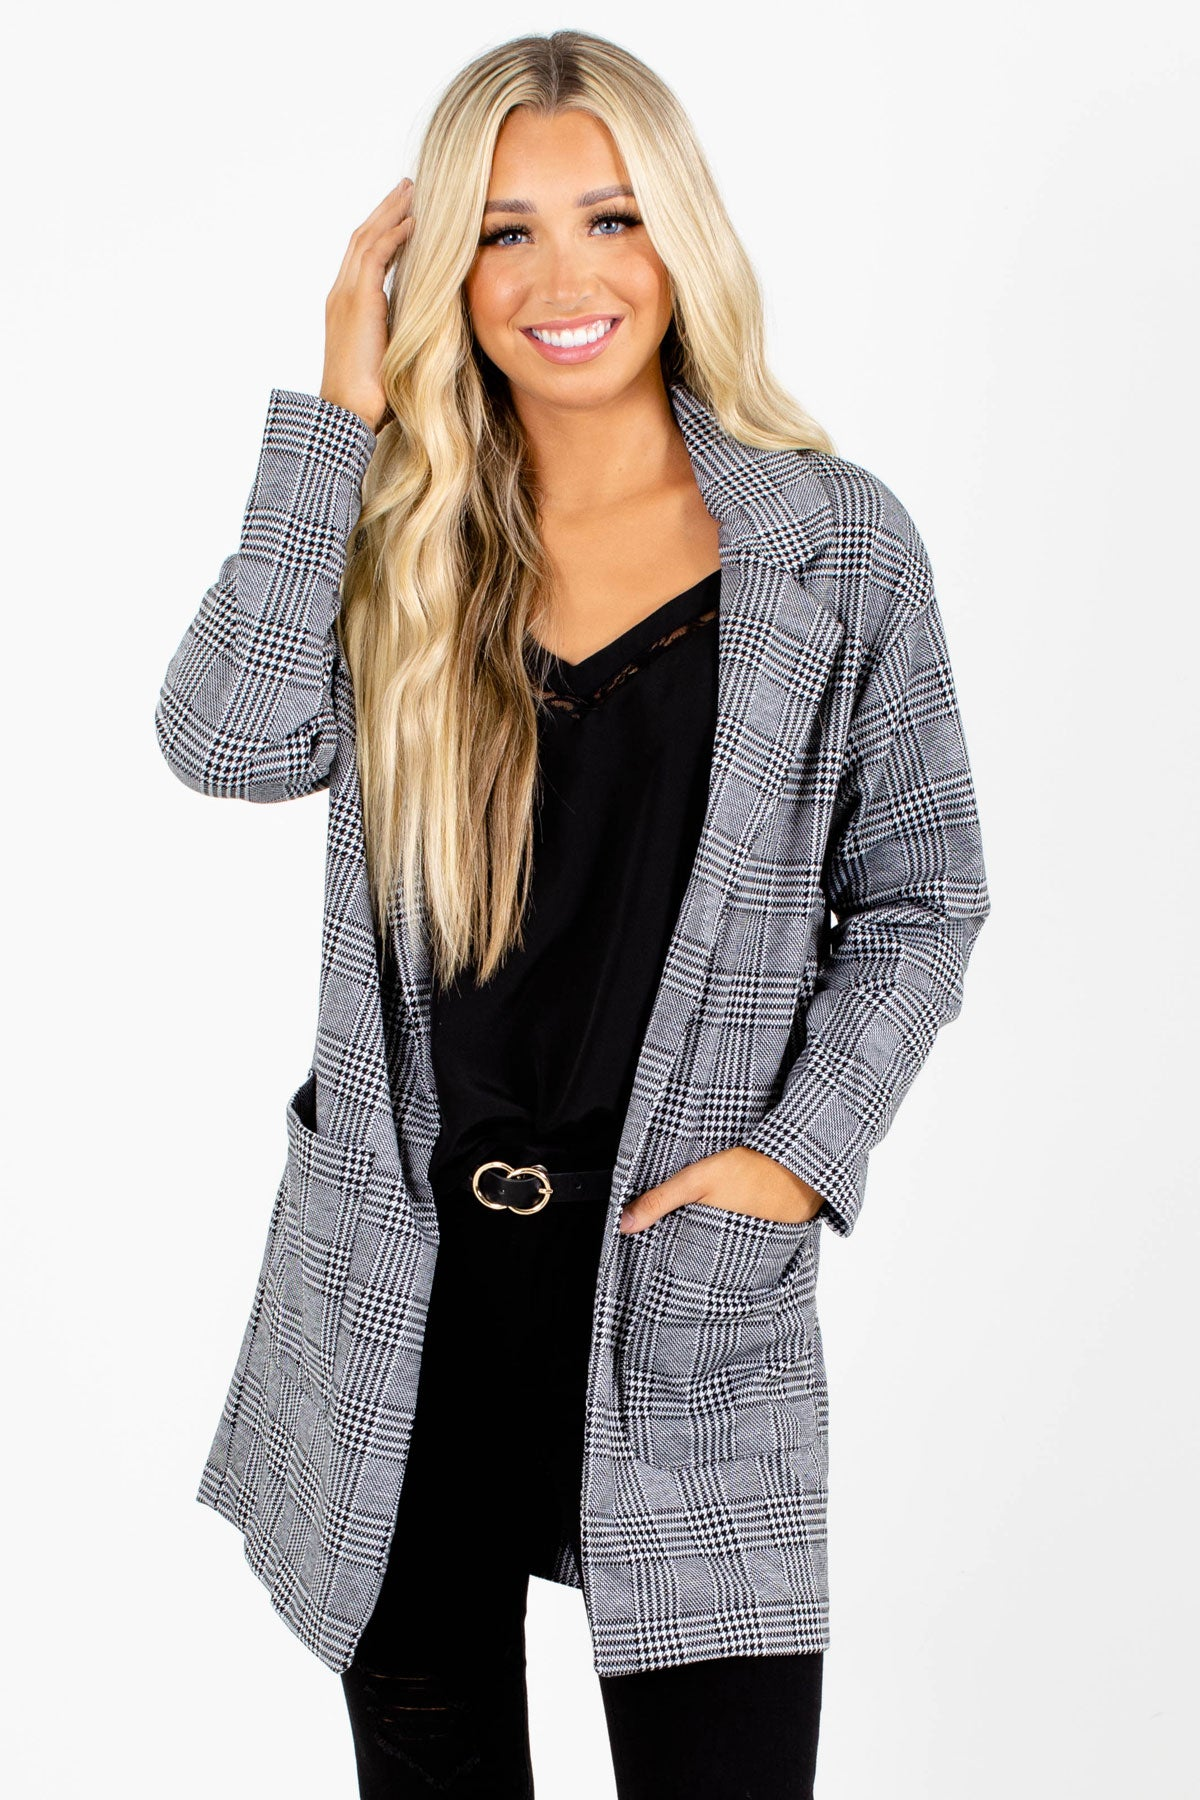 Gray and Black Plaid Patterned Boutique Blazers for Women